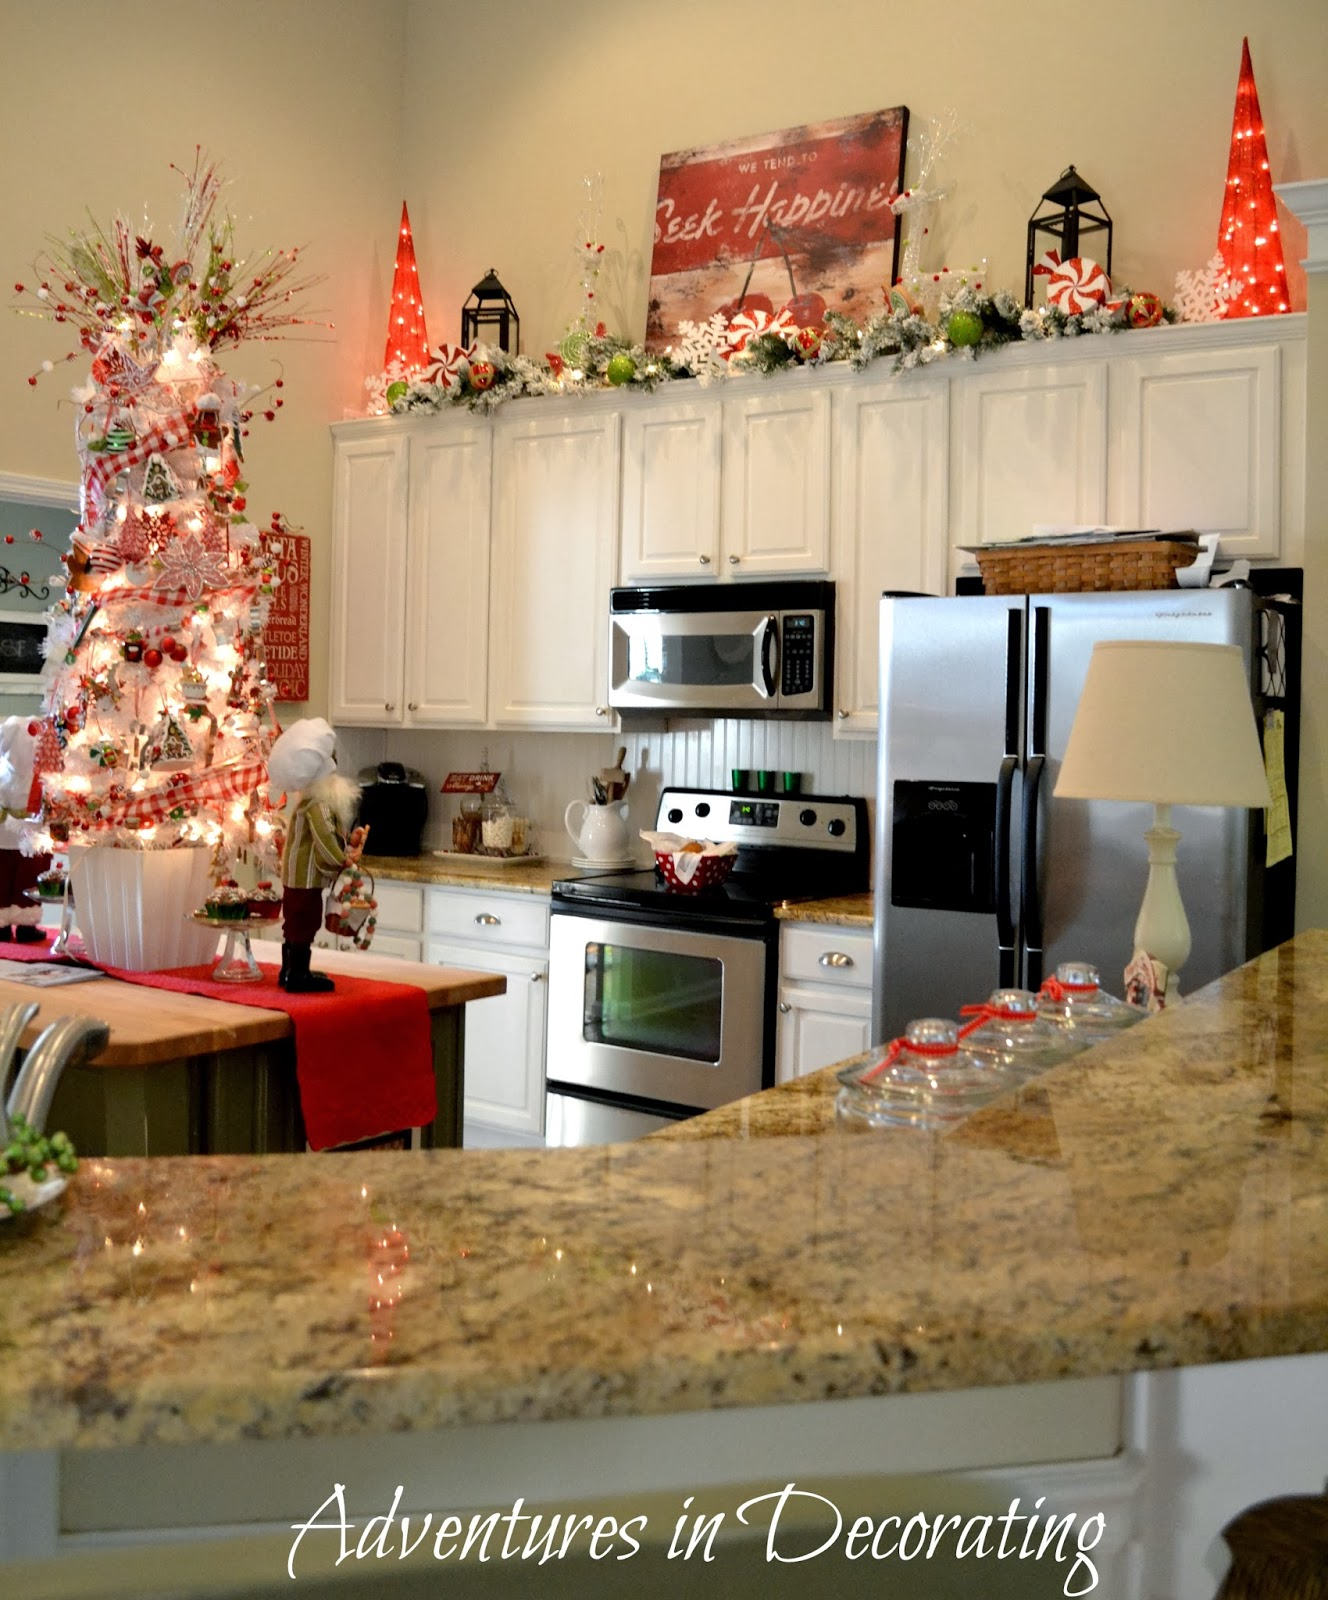 House Decoration Kitchen: Adventures In Decorating: Our Christmas Great Room And